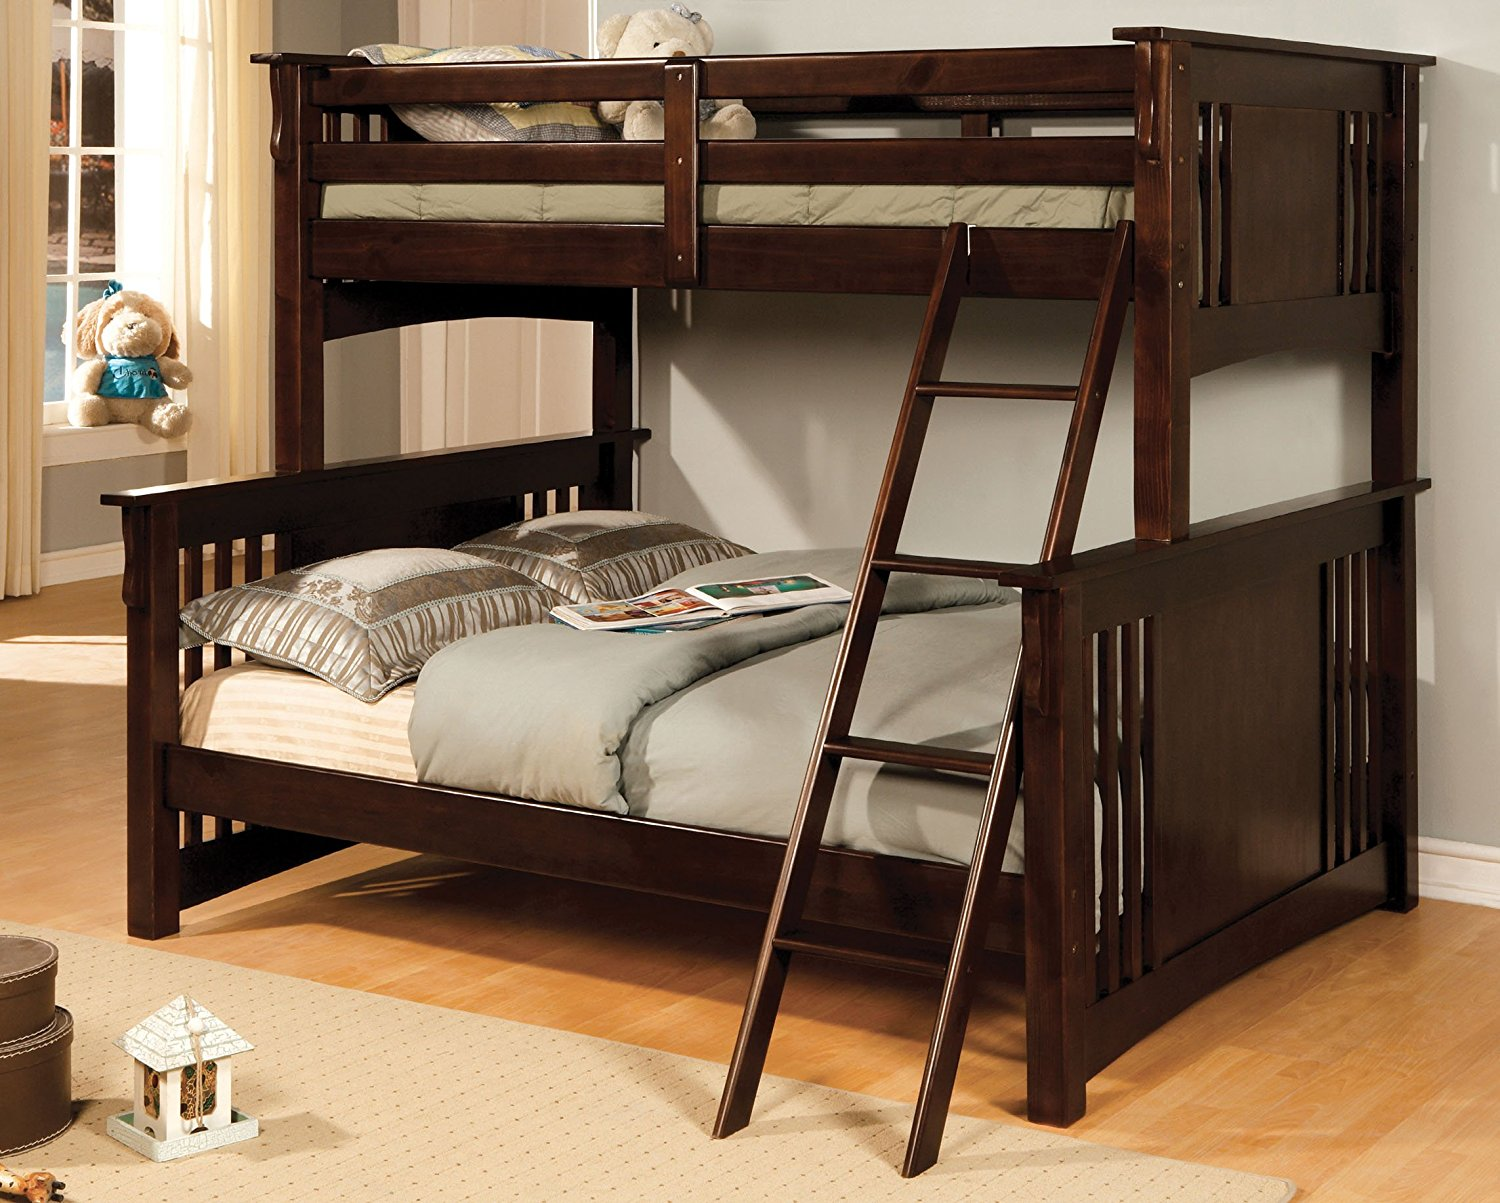 Furniture of America Concord Bunk Bed, Twin/Full, Espresso